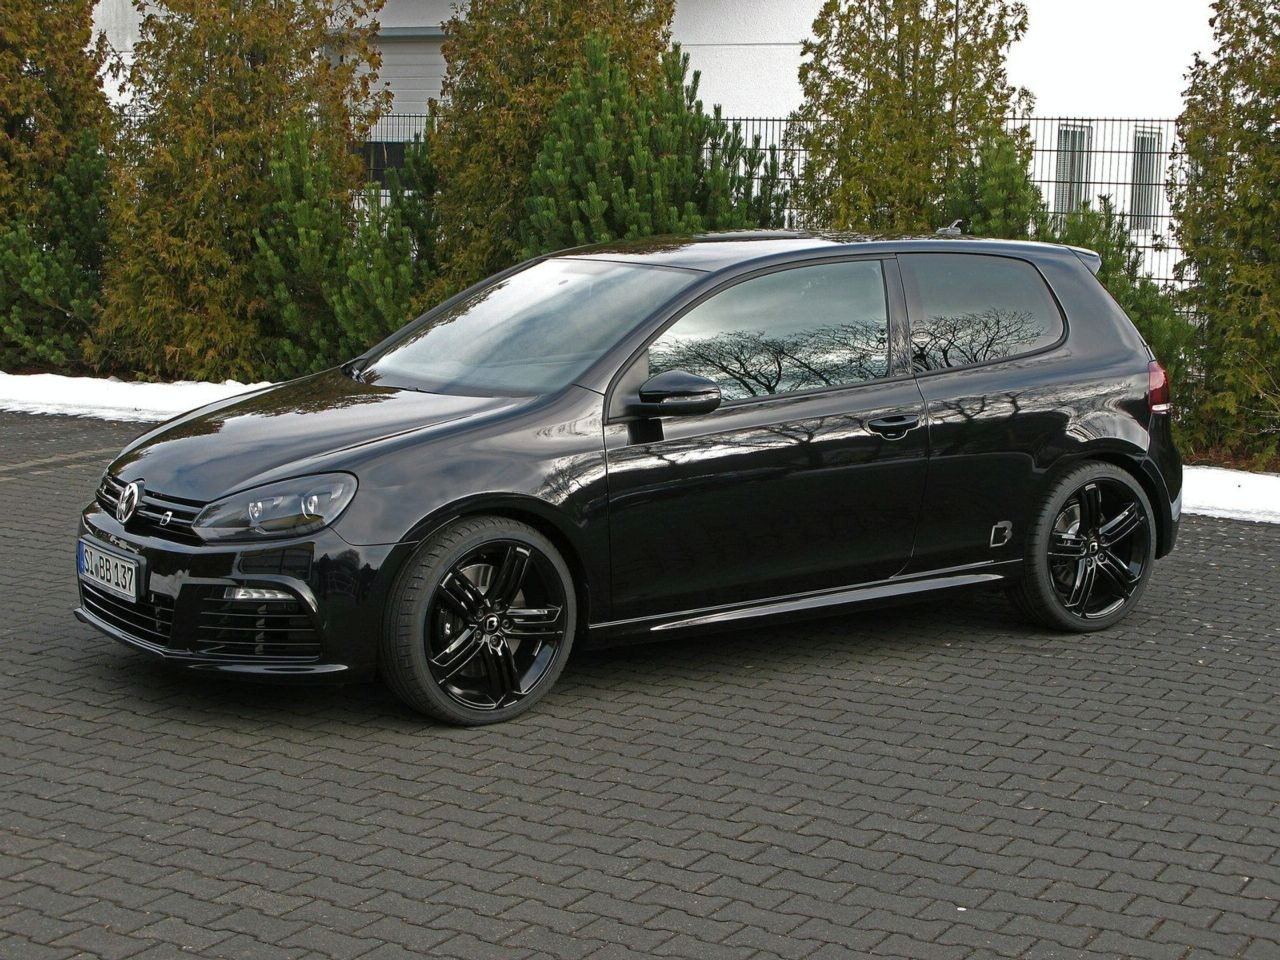 Our Wallpaper Cars Blog Provide 2015 Volkswagen Golf R Wallpapers Car With Cool Hd Photos Woith Various Resolutions 2 Pictures